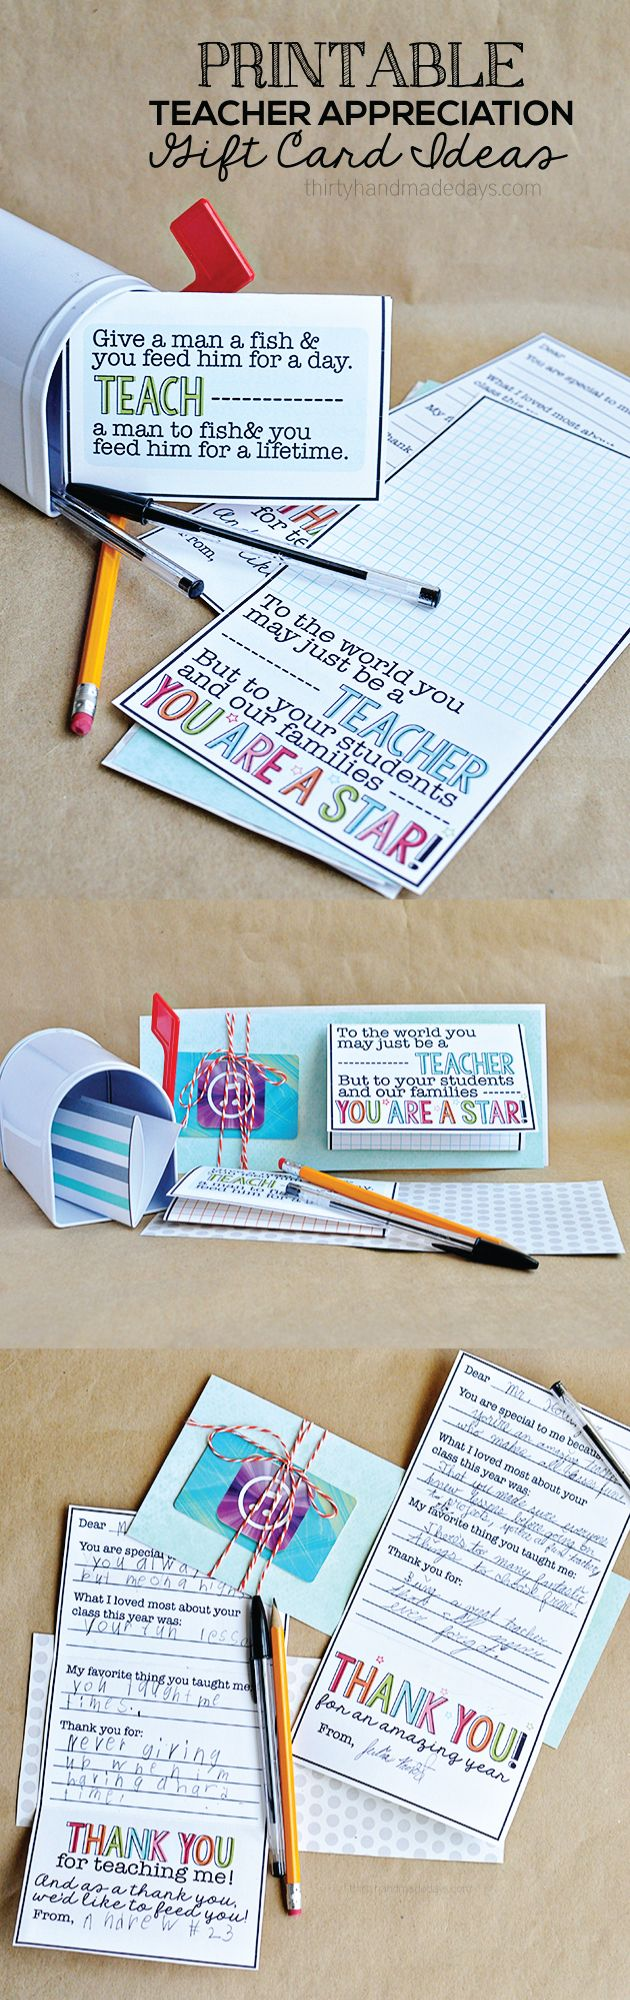 Teacher Appreciation Gift Idea- print this gift card holder with thank you card inside for the perfect present!